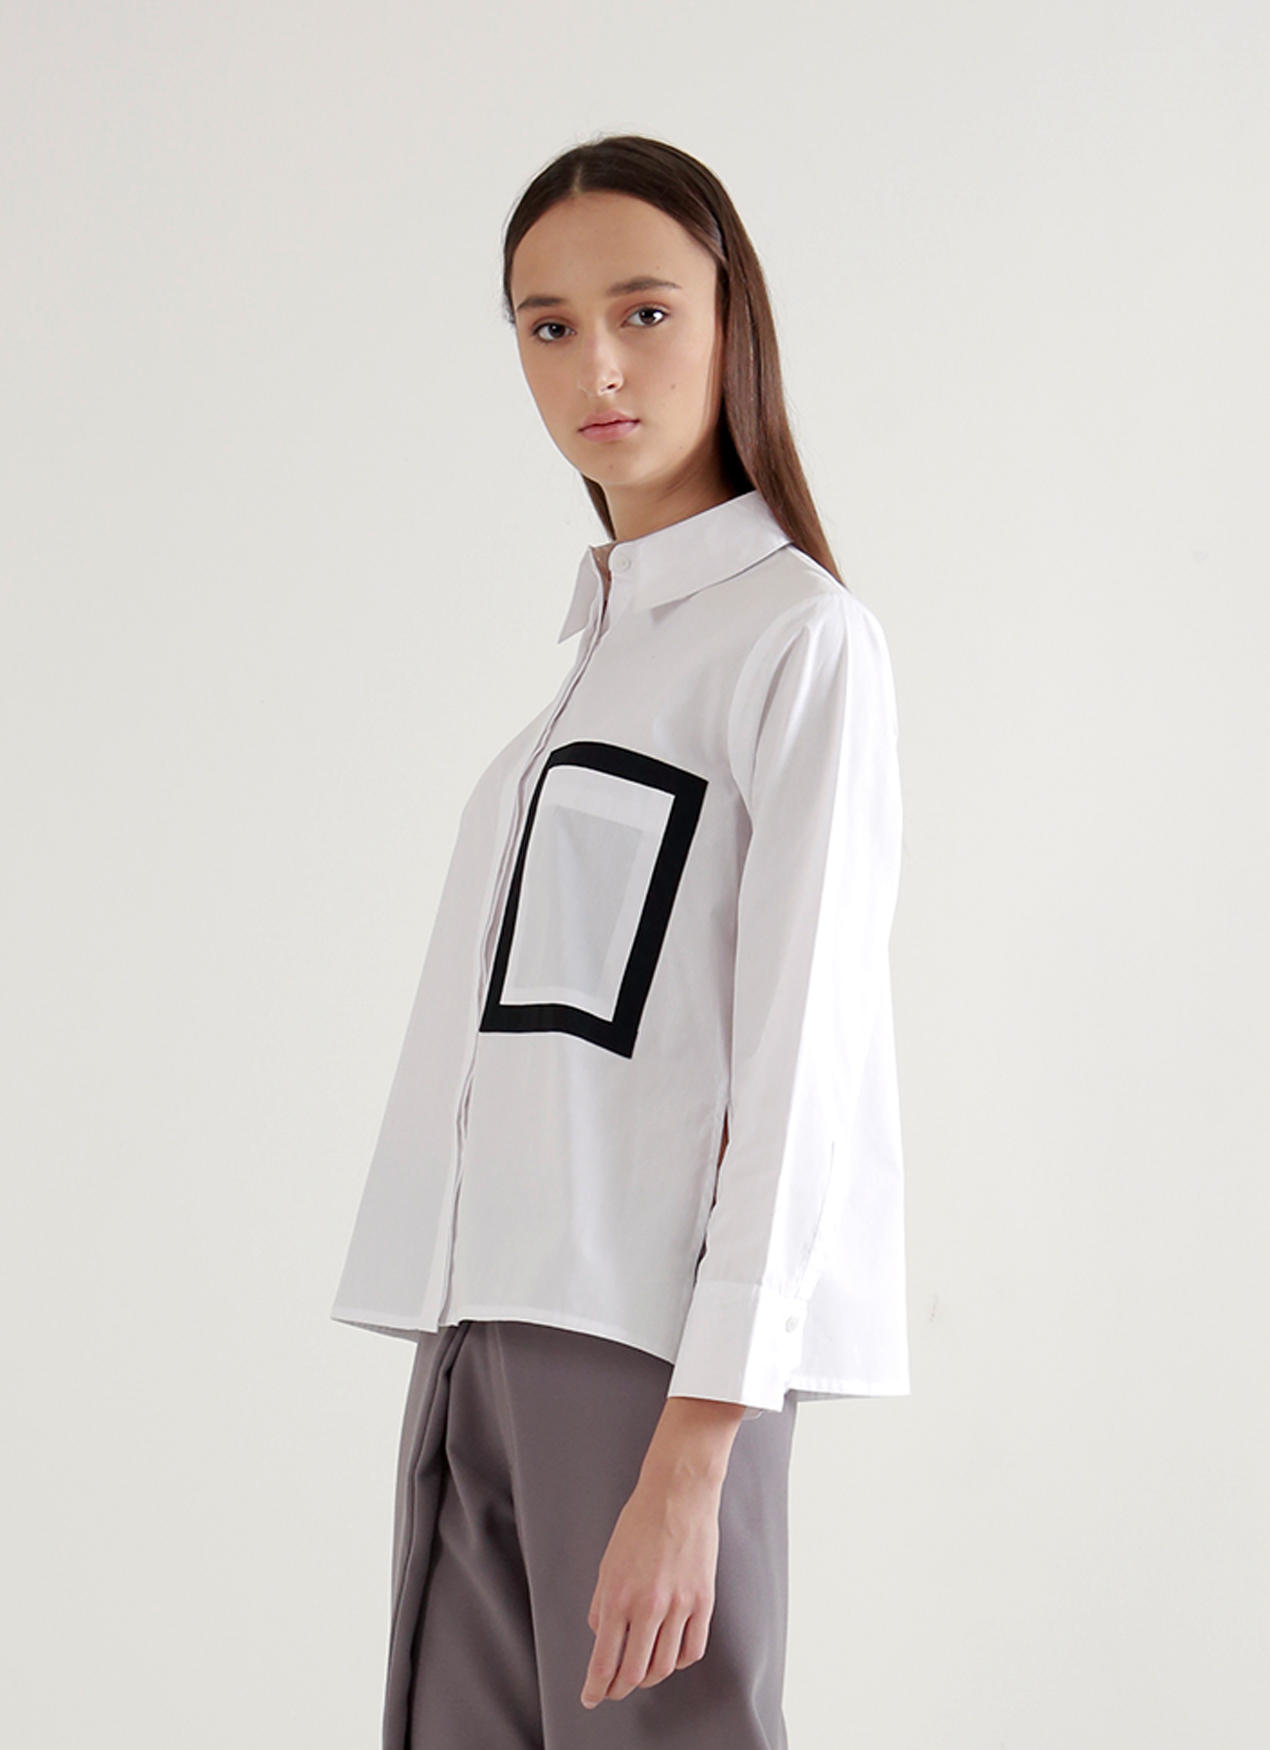 Wastu Frame Shirt - White